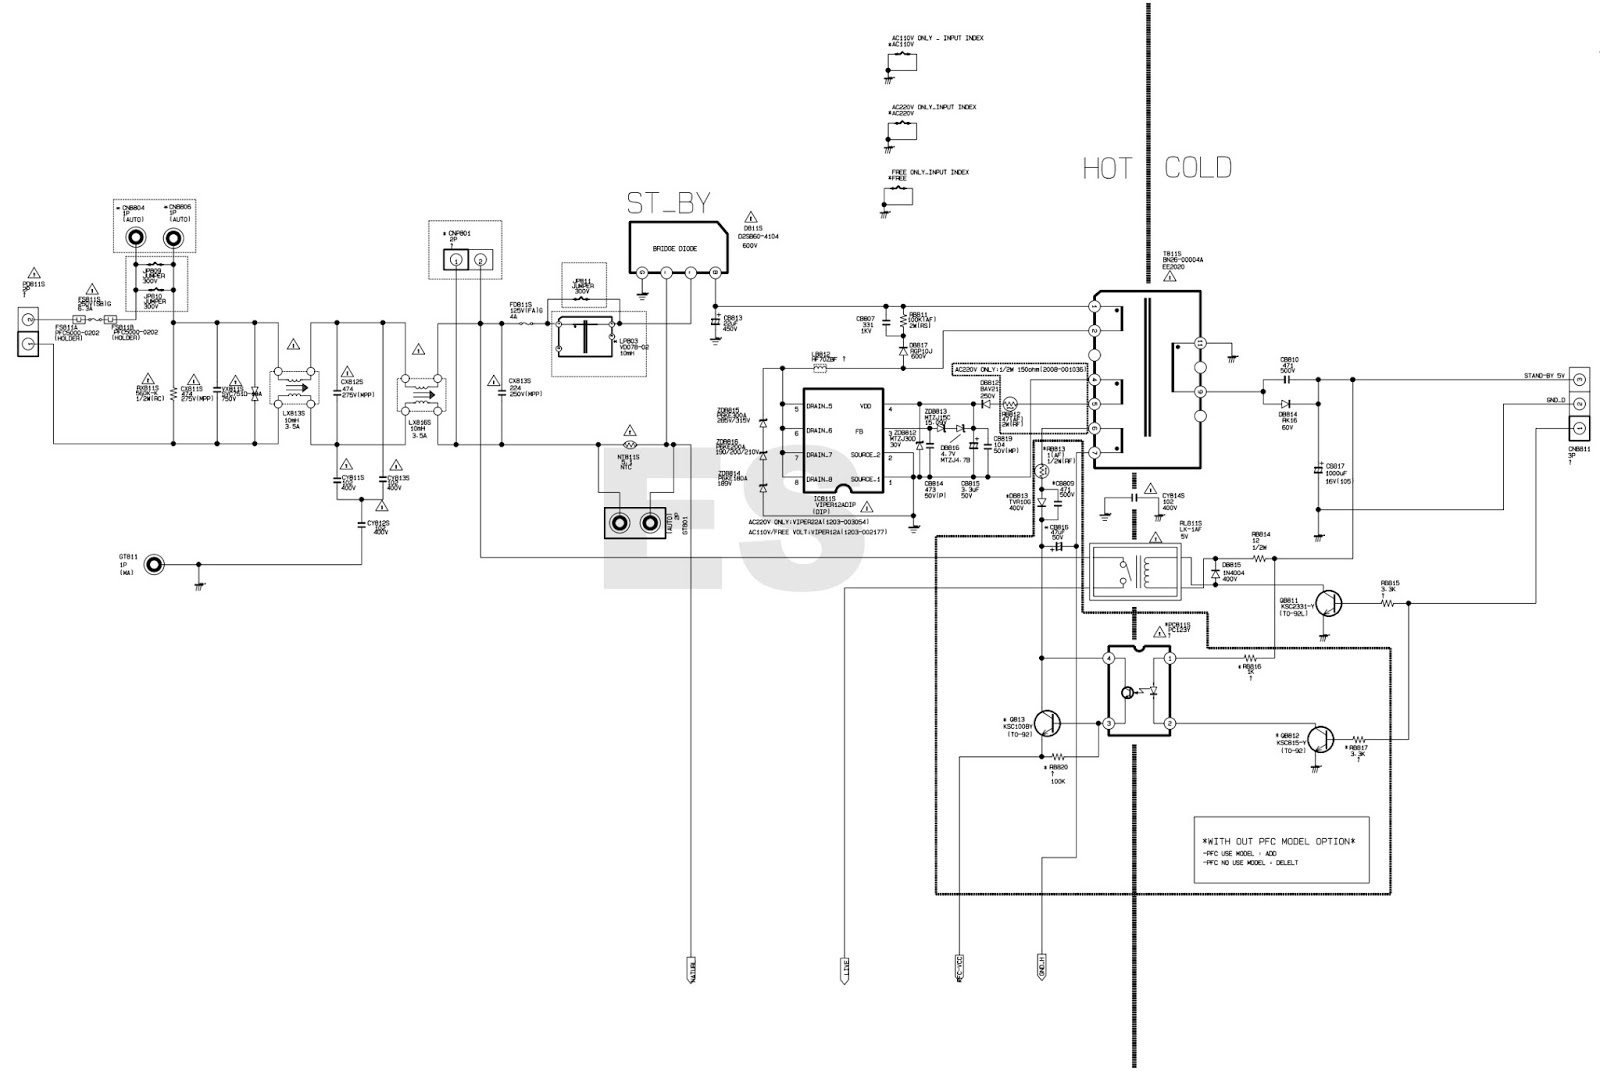 hight resolution of firmware download samsung bn44 00622b power supply board schematic diagram viper12a str